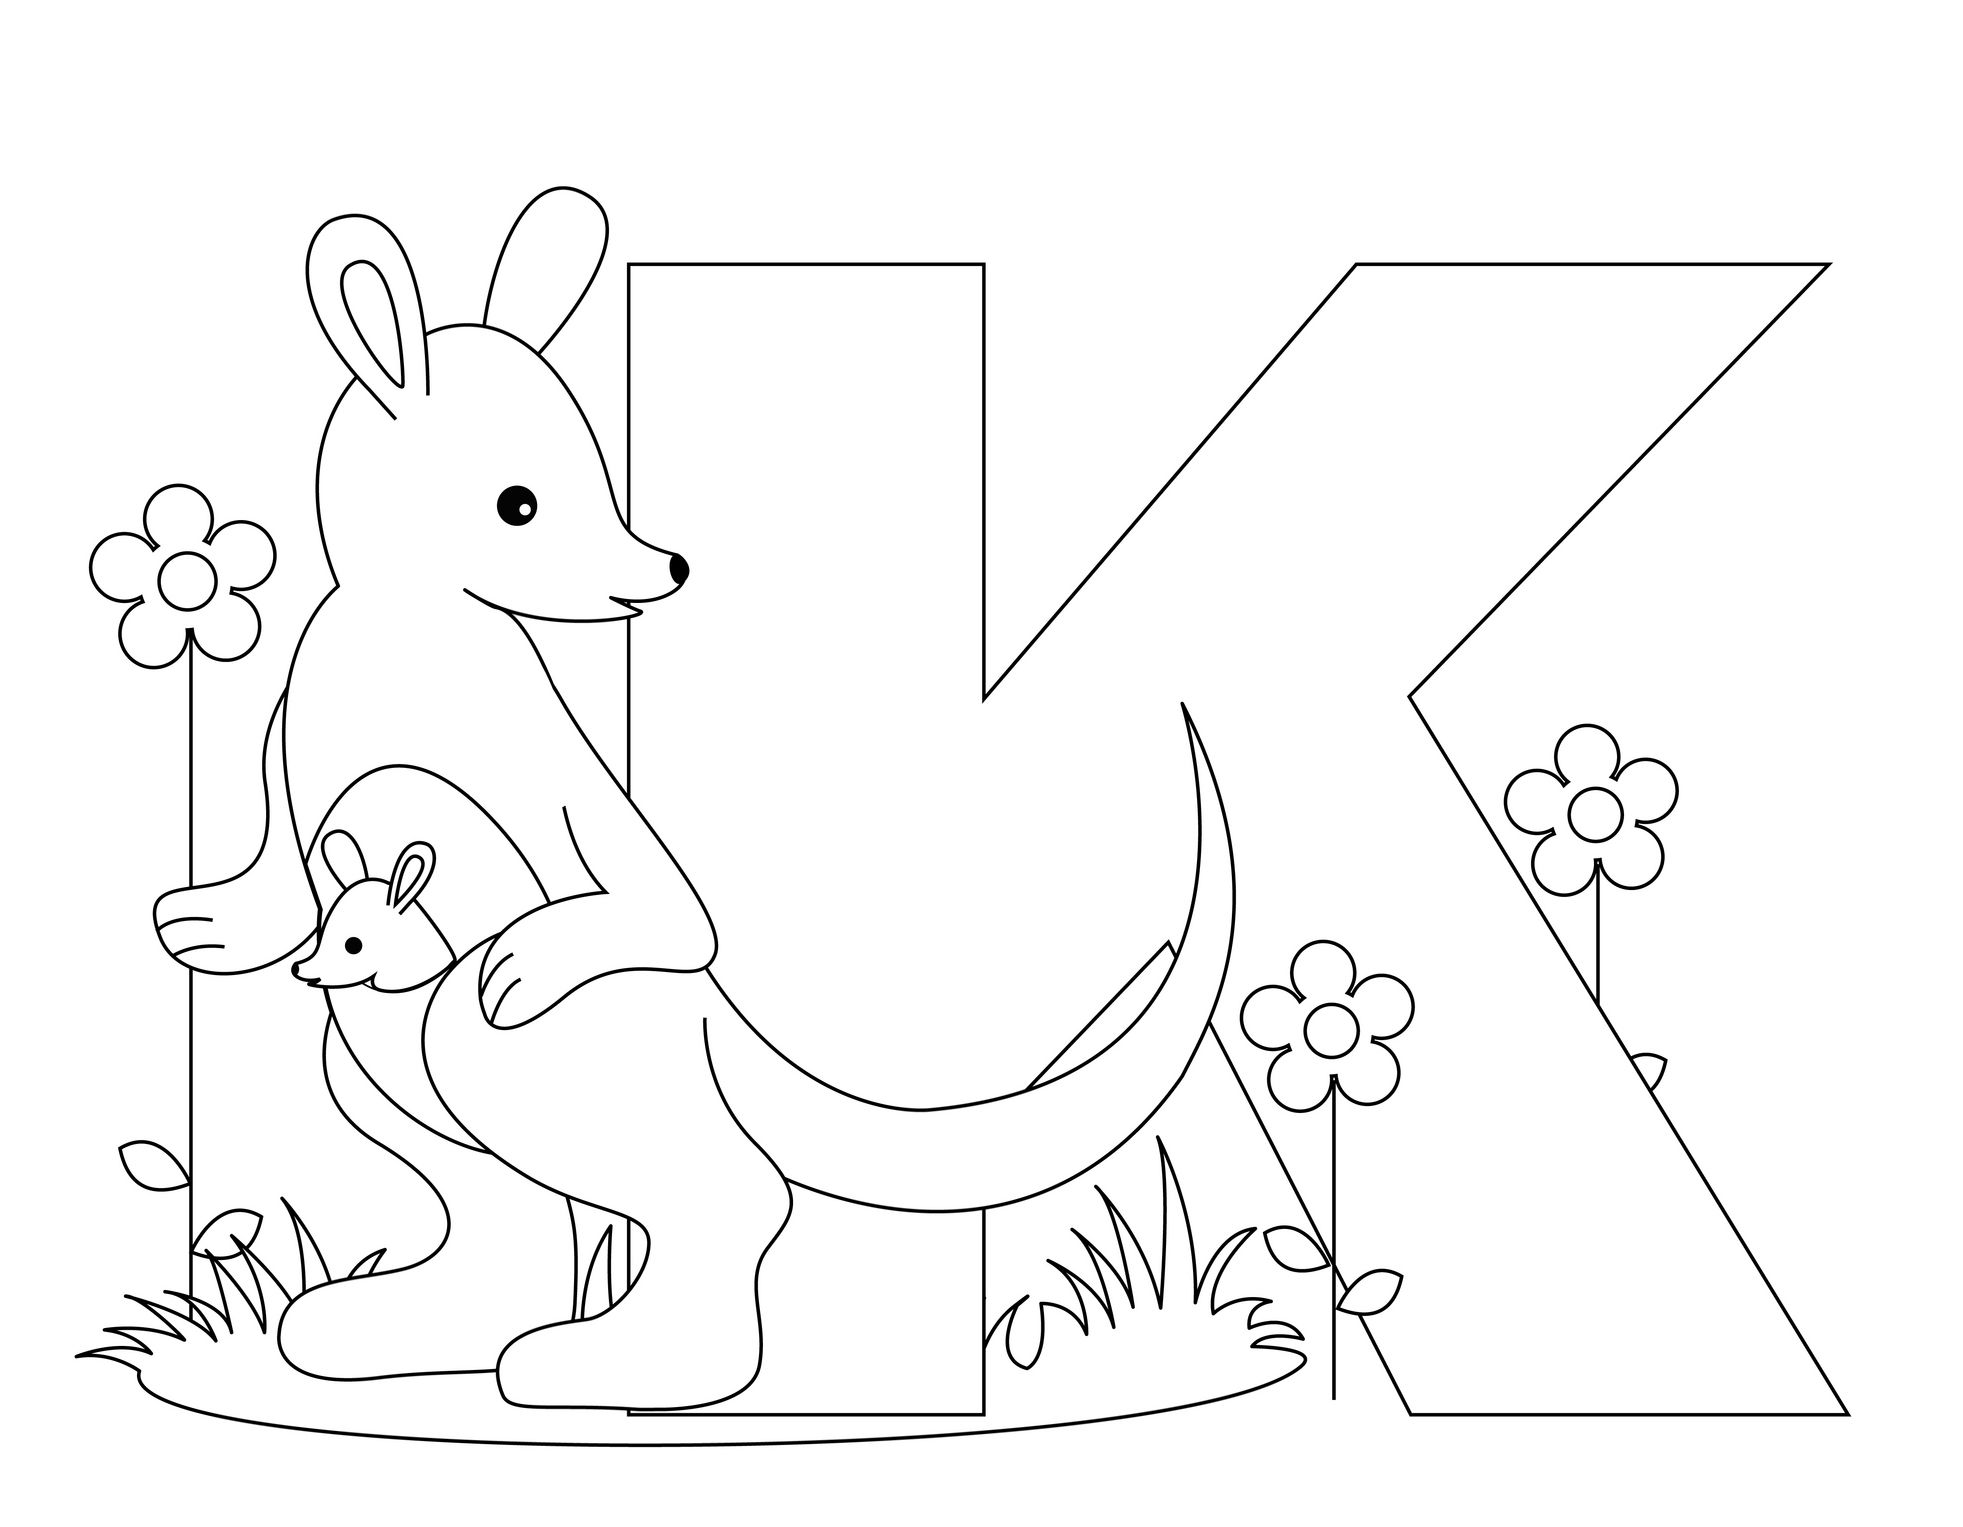 Free Kindergarten Alphabet Worksheets – Letter K Worksheets for Preschoolers